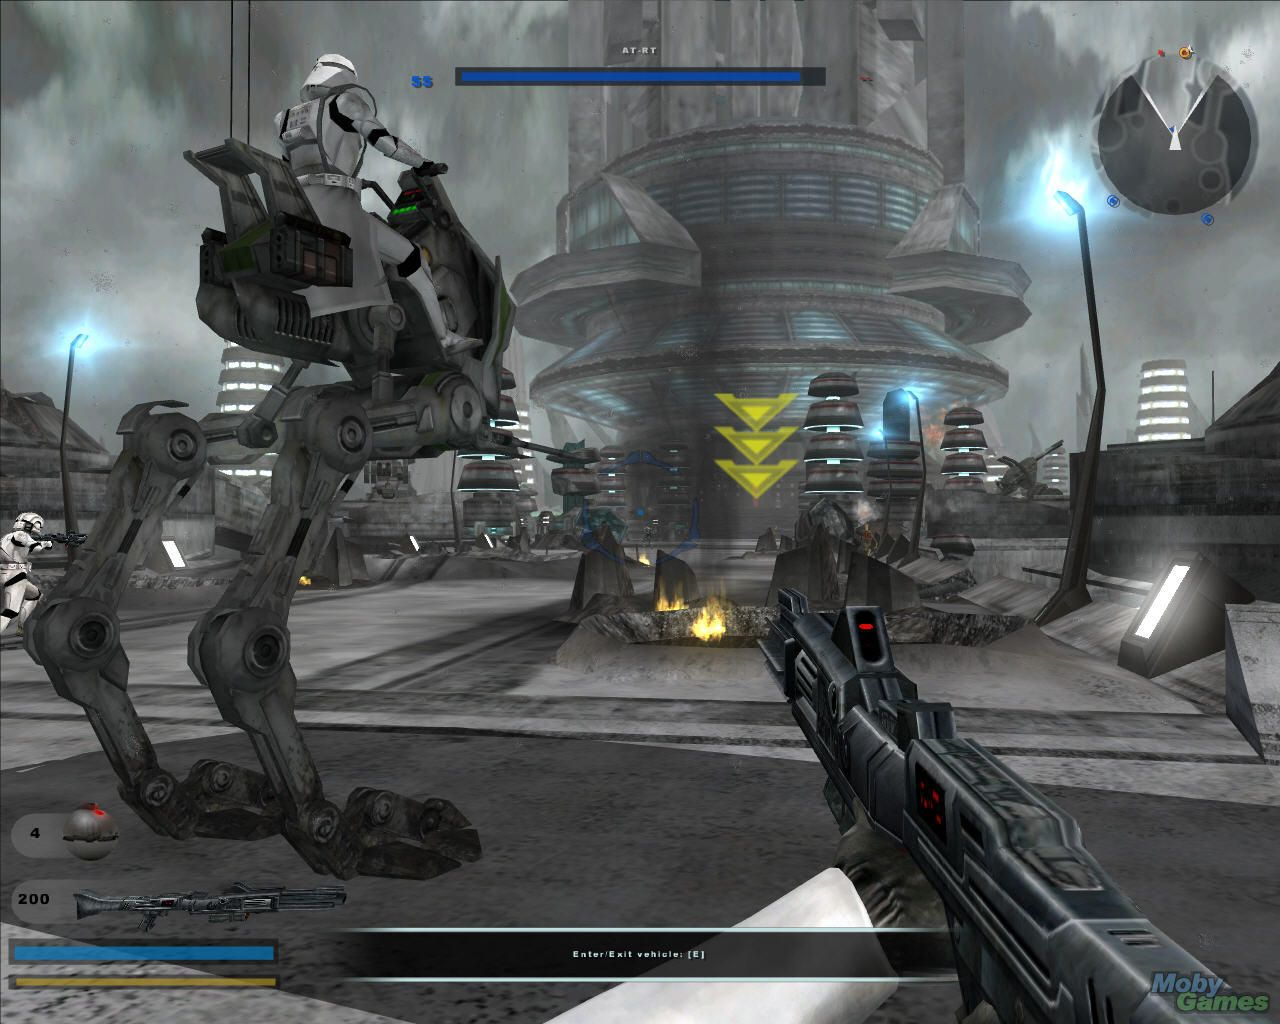 Star Wars Battlefront 2 Mediafire Download Star Wars Watch